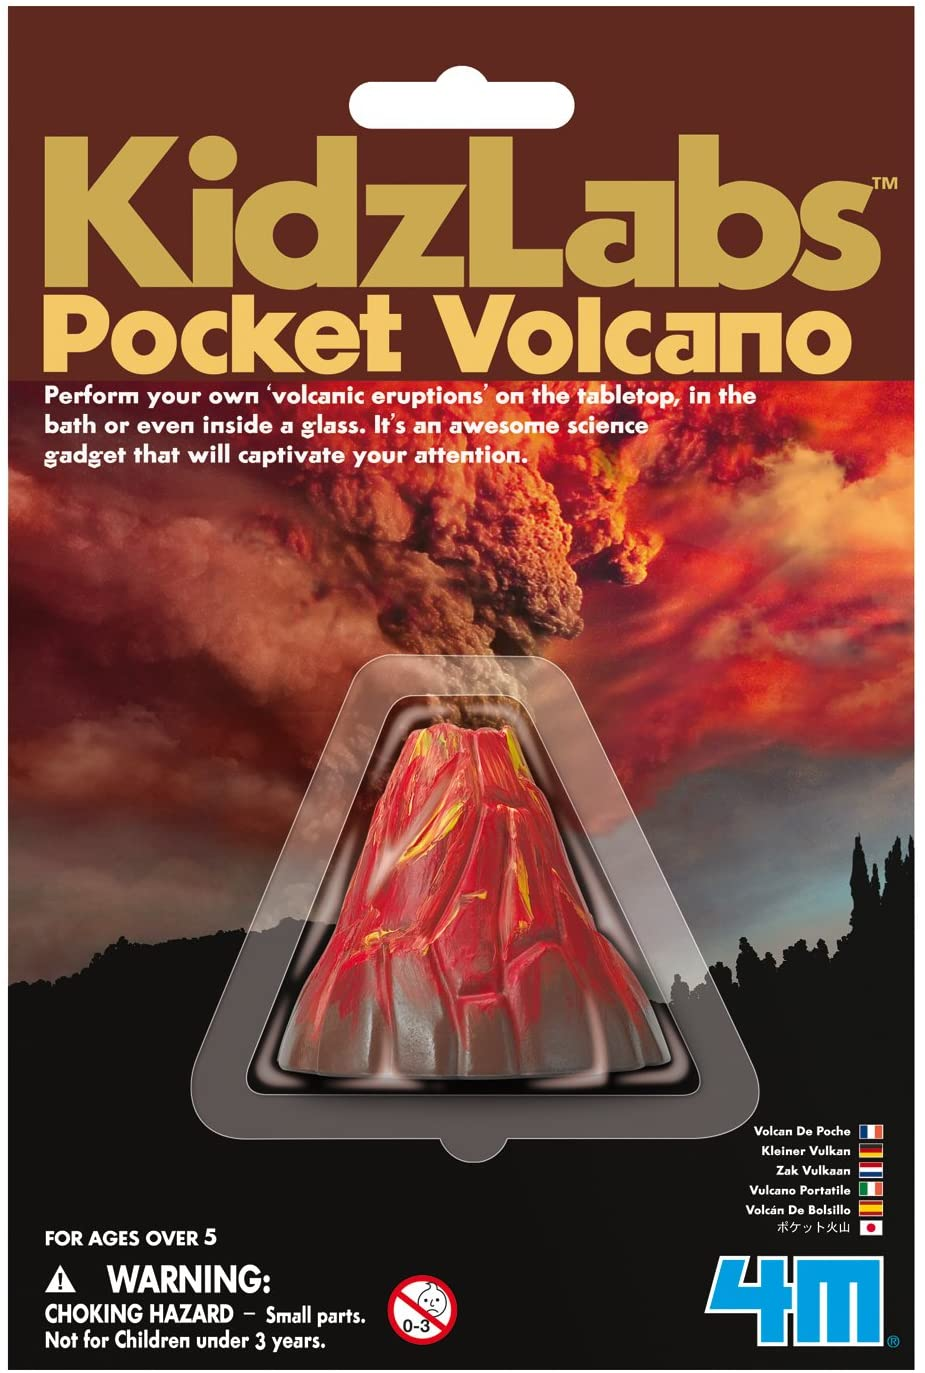 KidzLabs: Pocket Volcano